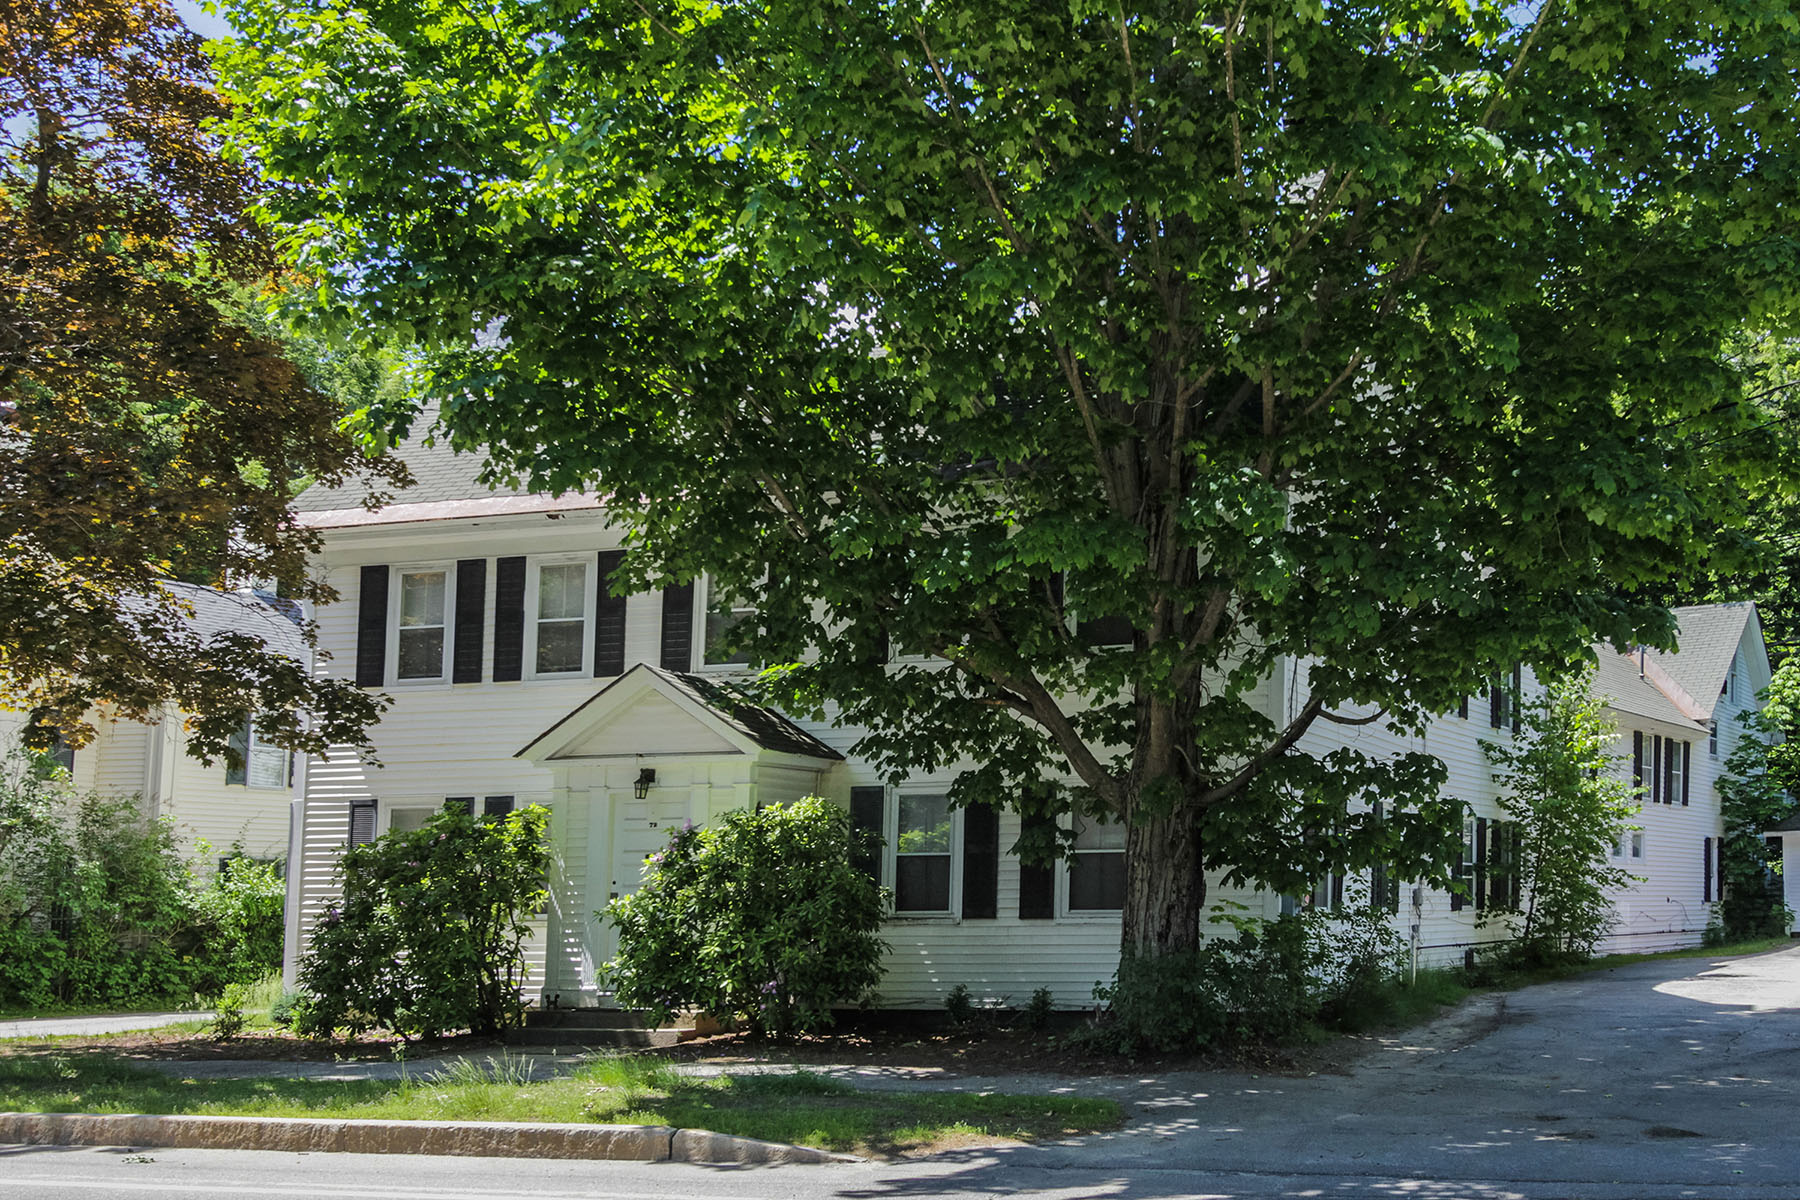 Single Family Home for Sale at Federal Street 72 Federal Street Brunswick, Maine, 04011 United States